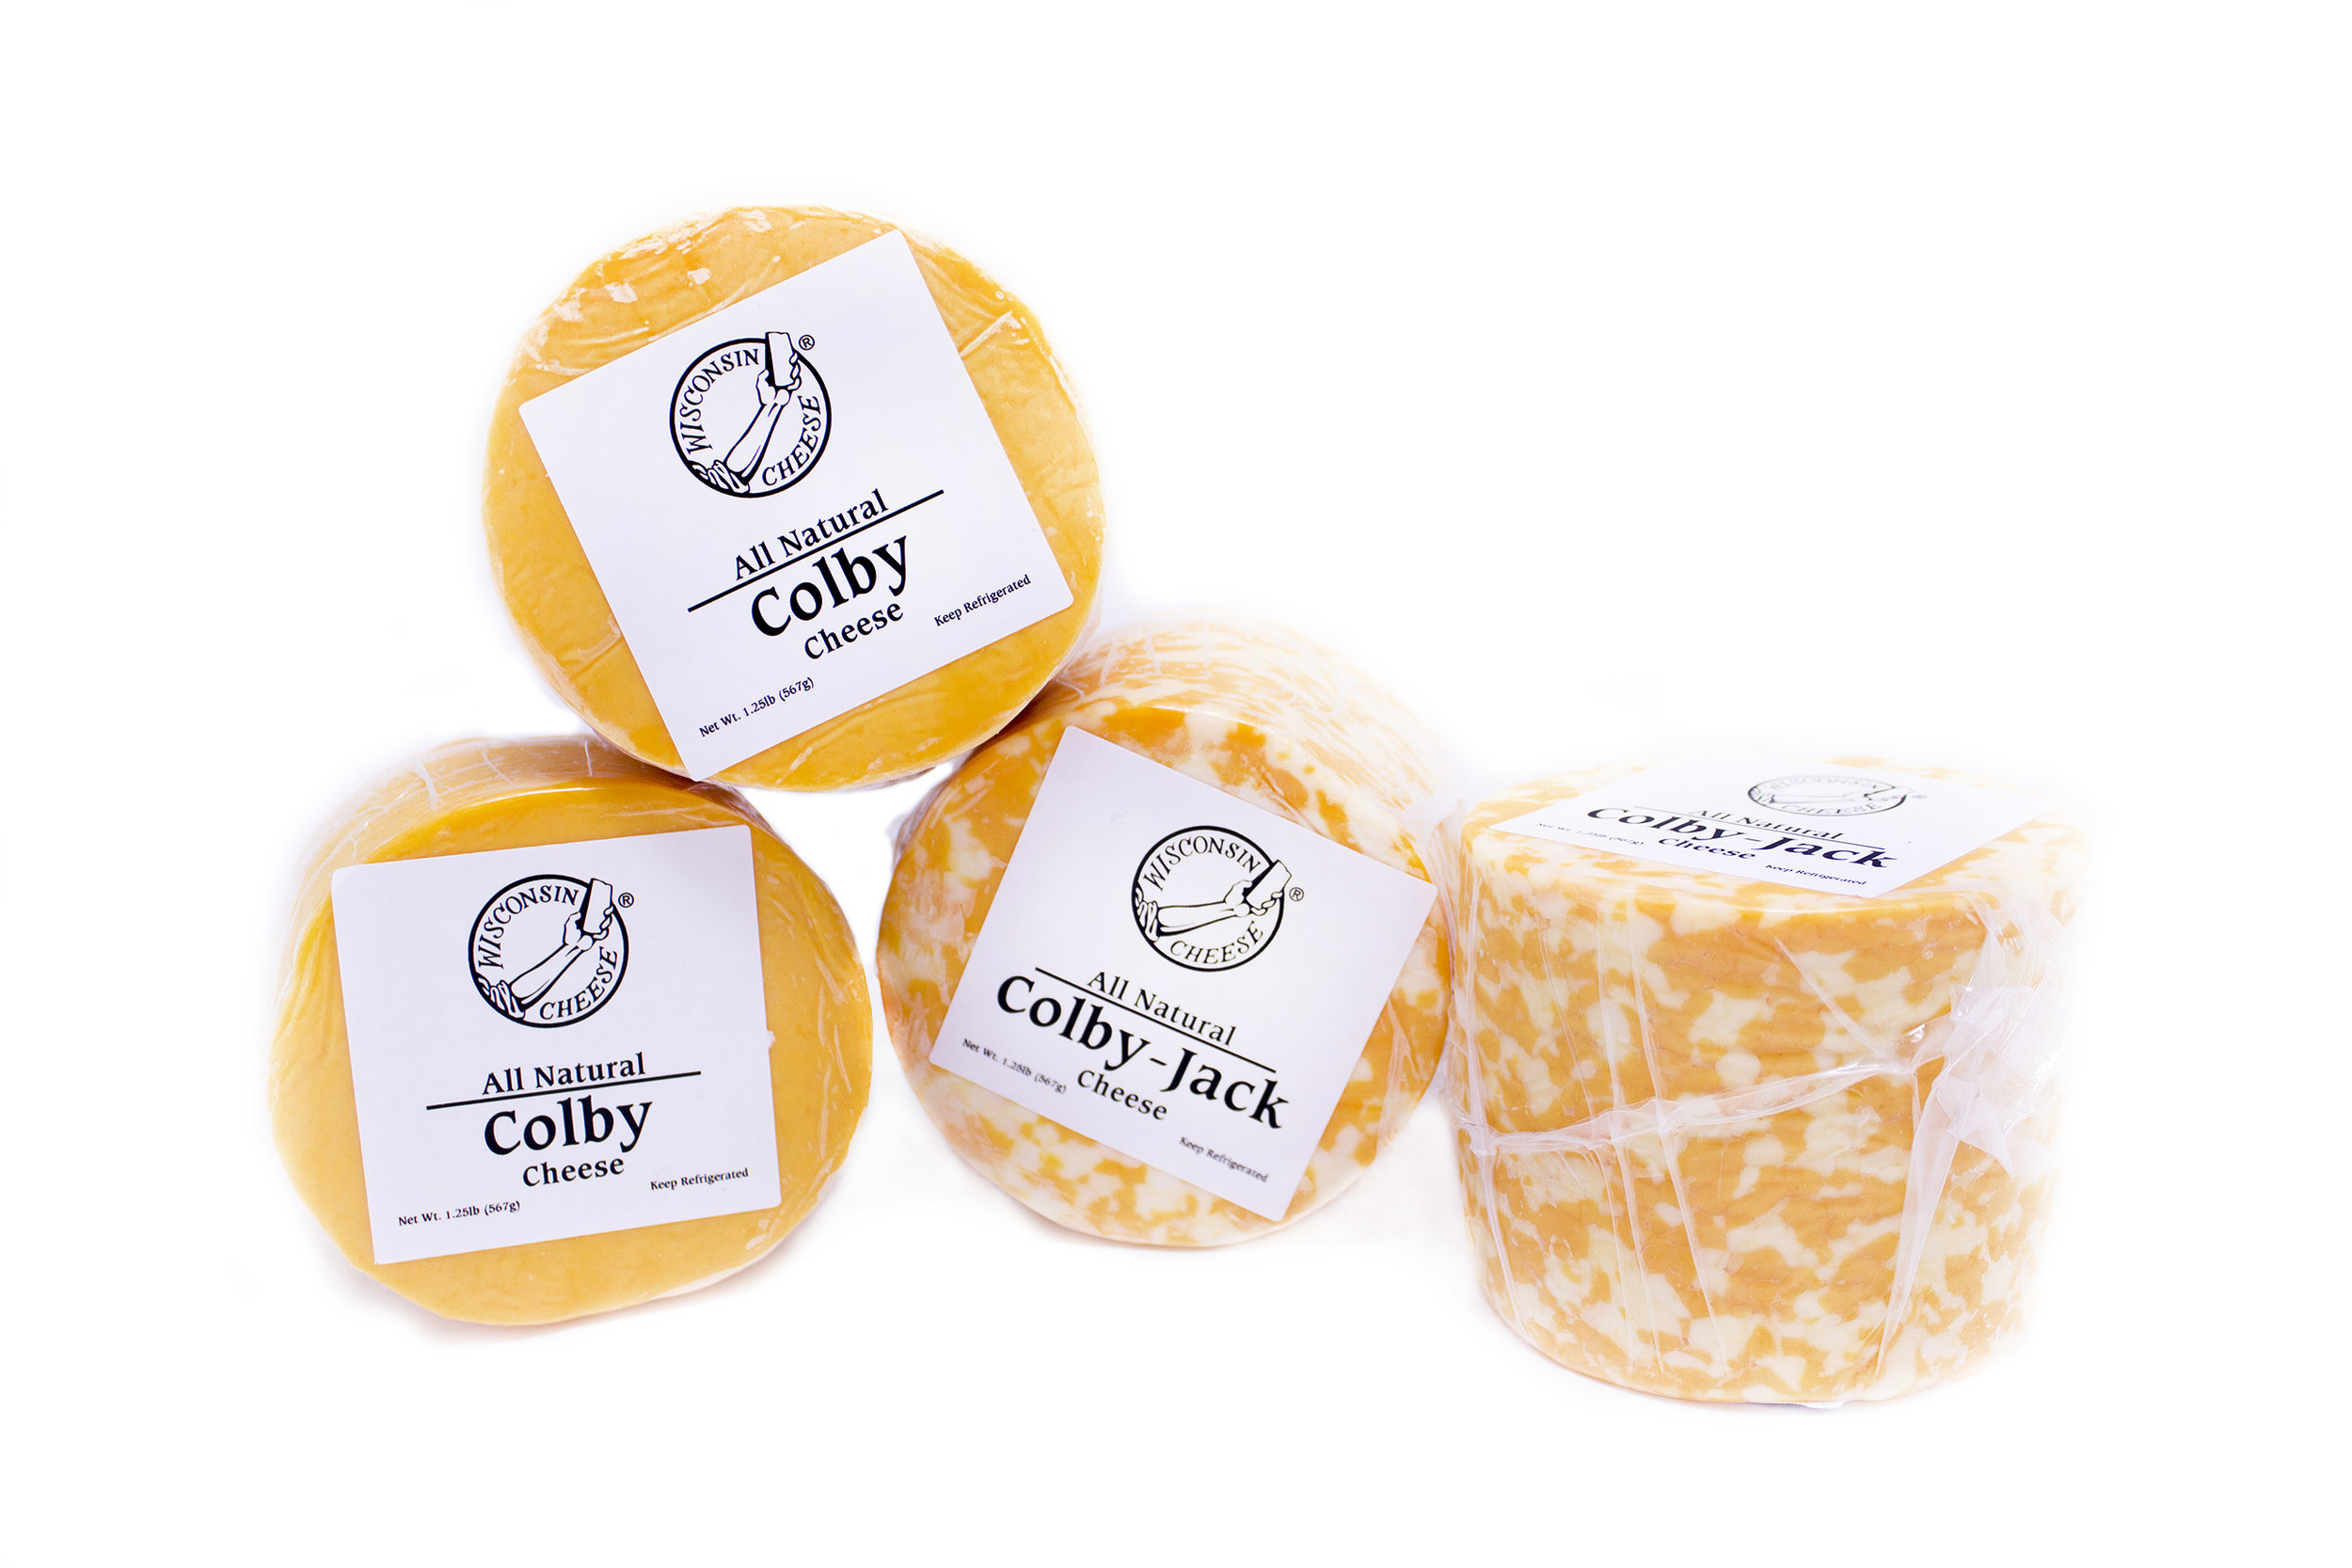 Wisconsin Colby and Colby Jack Cheese